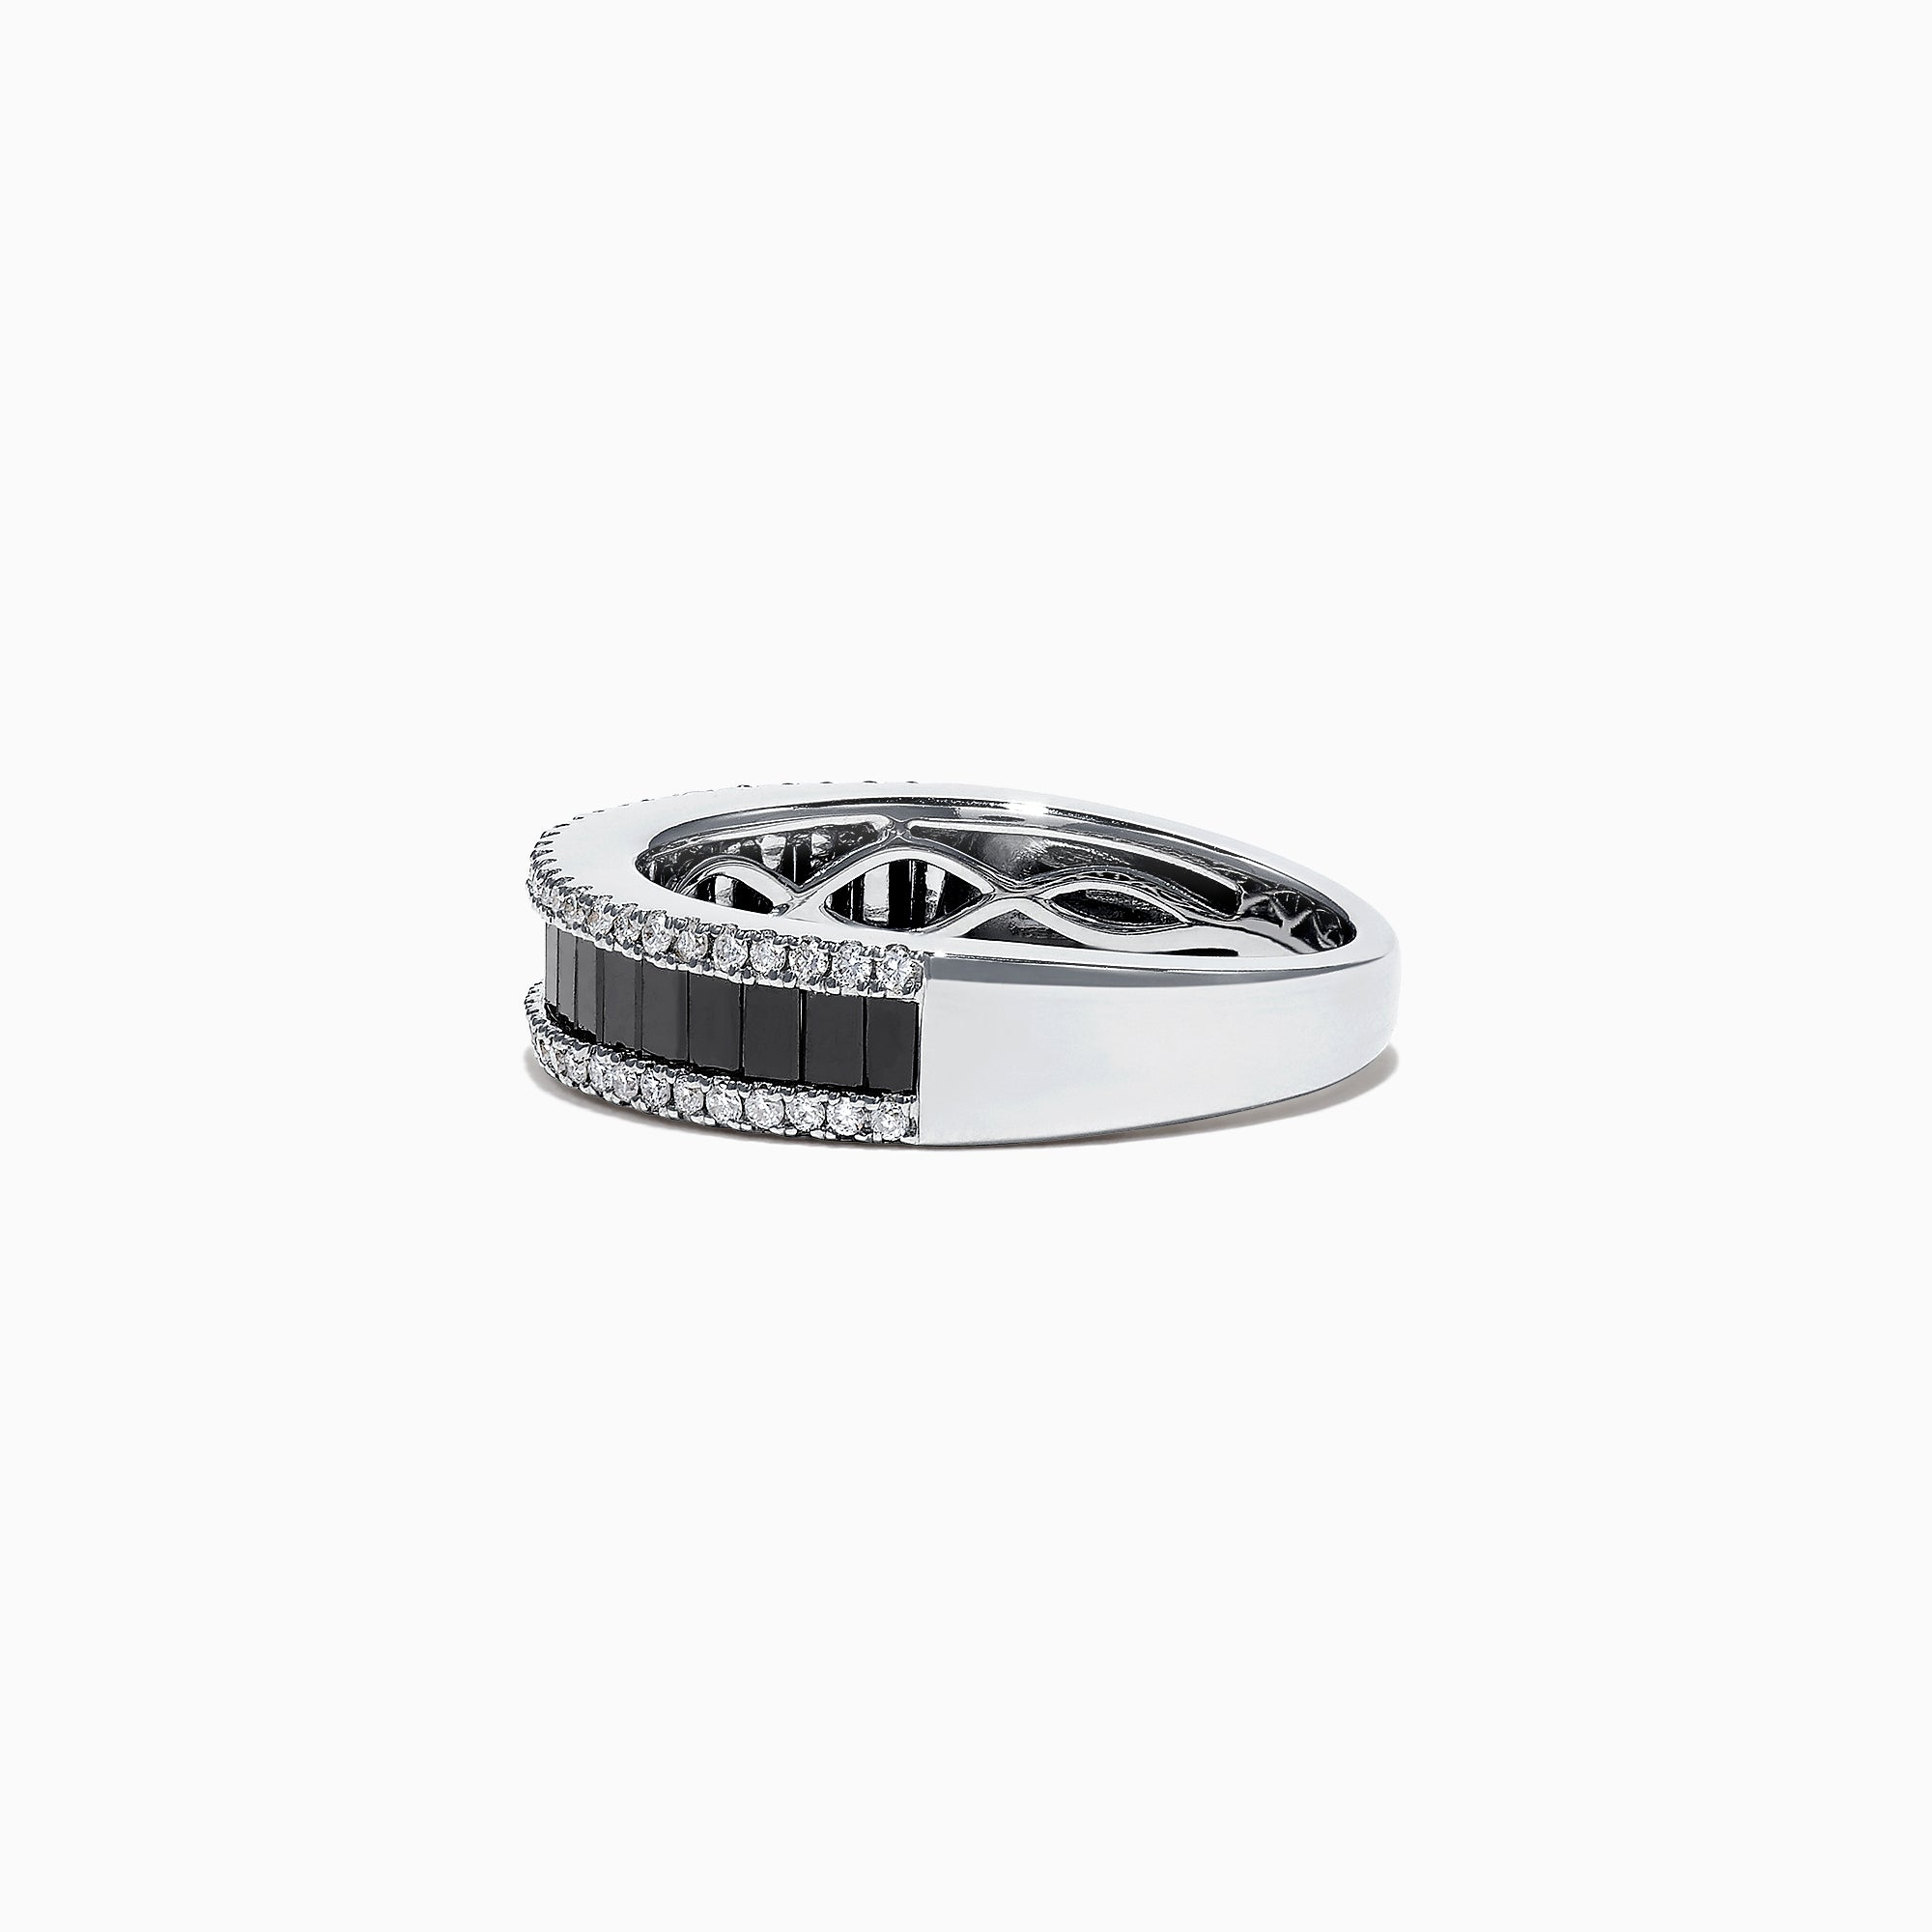 Effy 14K White Gold Black and White Diamond Band Ring, 1.06 TCW